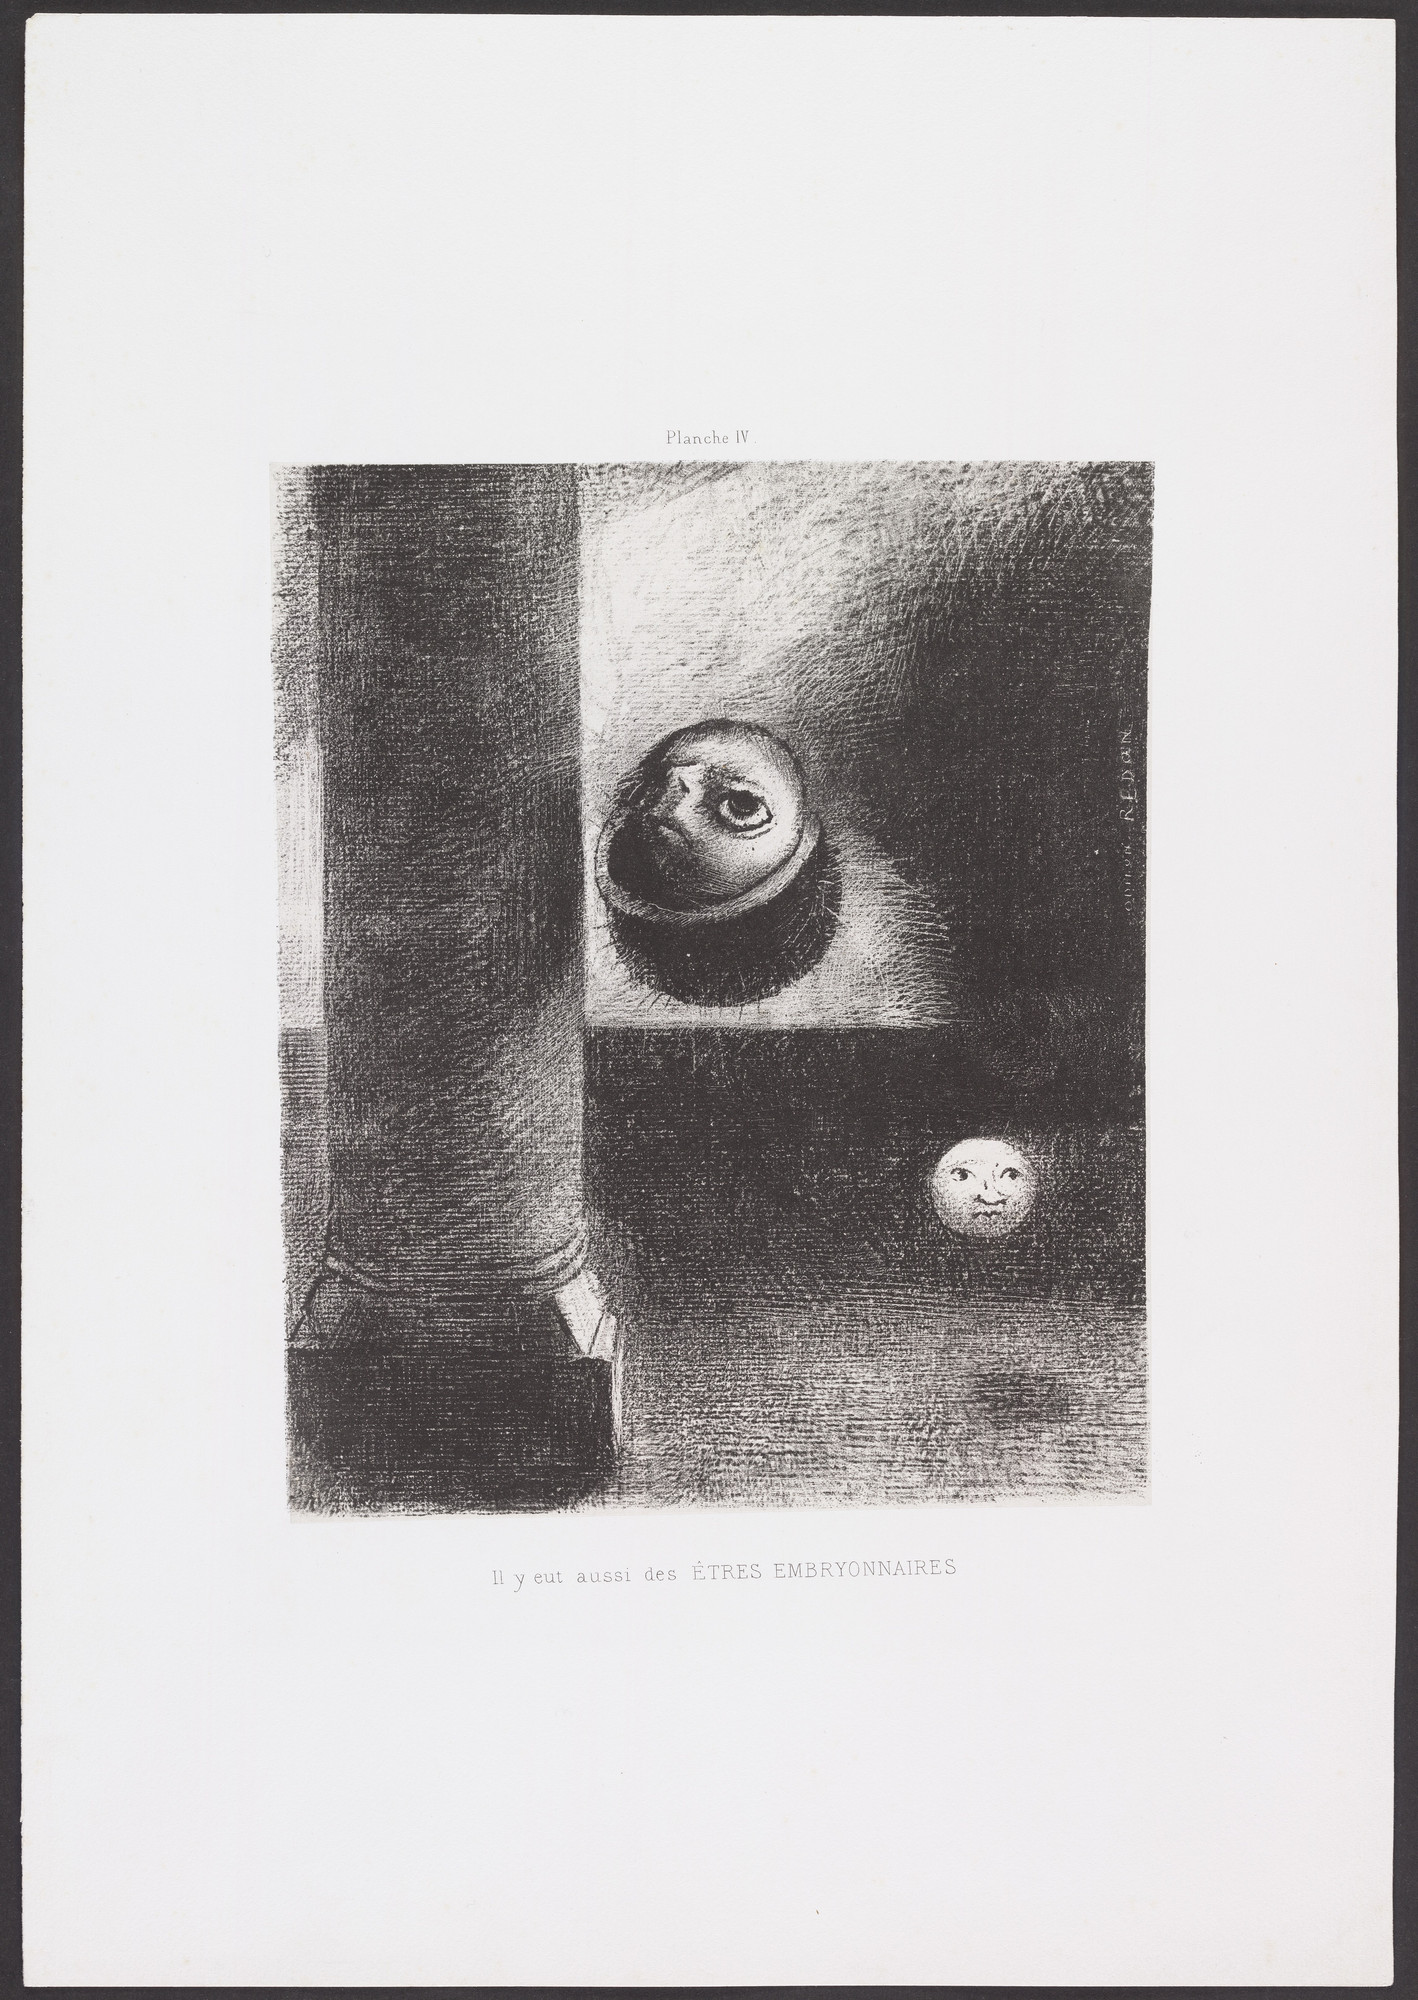 Odilon Redon. There Were Also Embryonic Beings (Il y eut aussi des êtres embryonnaires) from Homage to Goya (Hommage à Goya). 1885